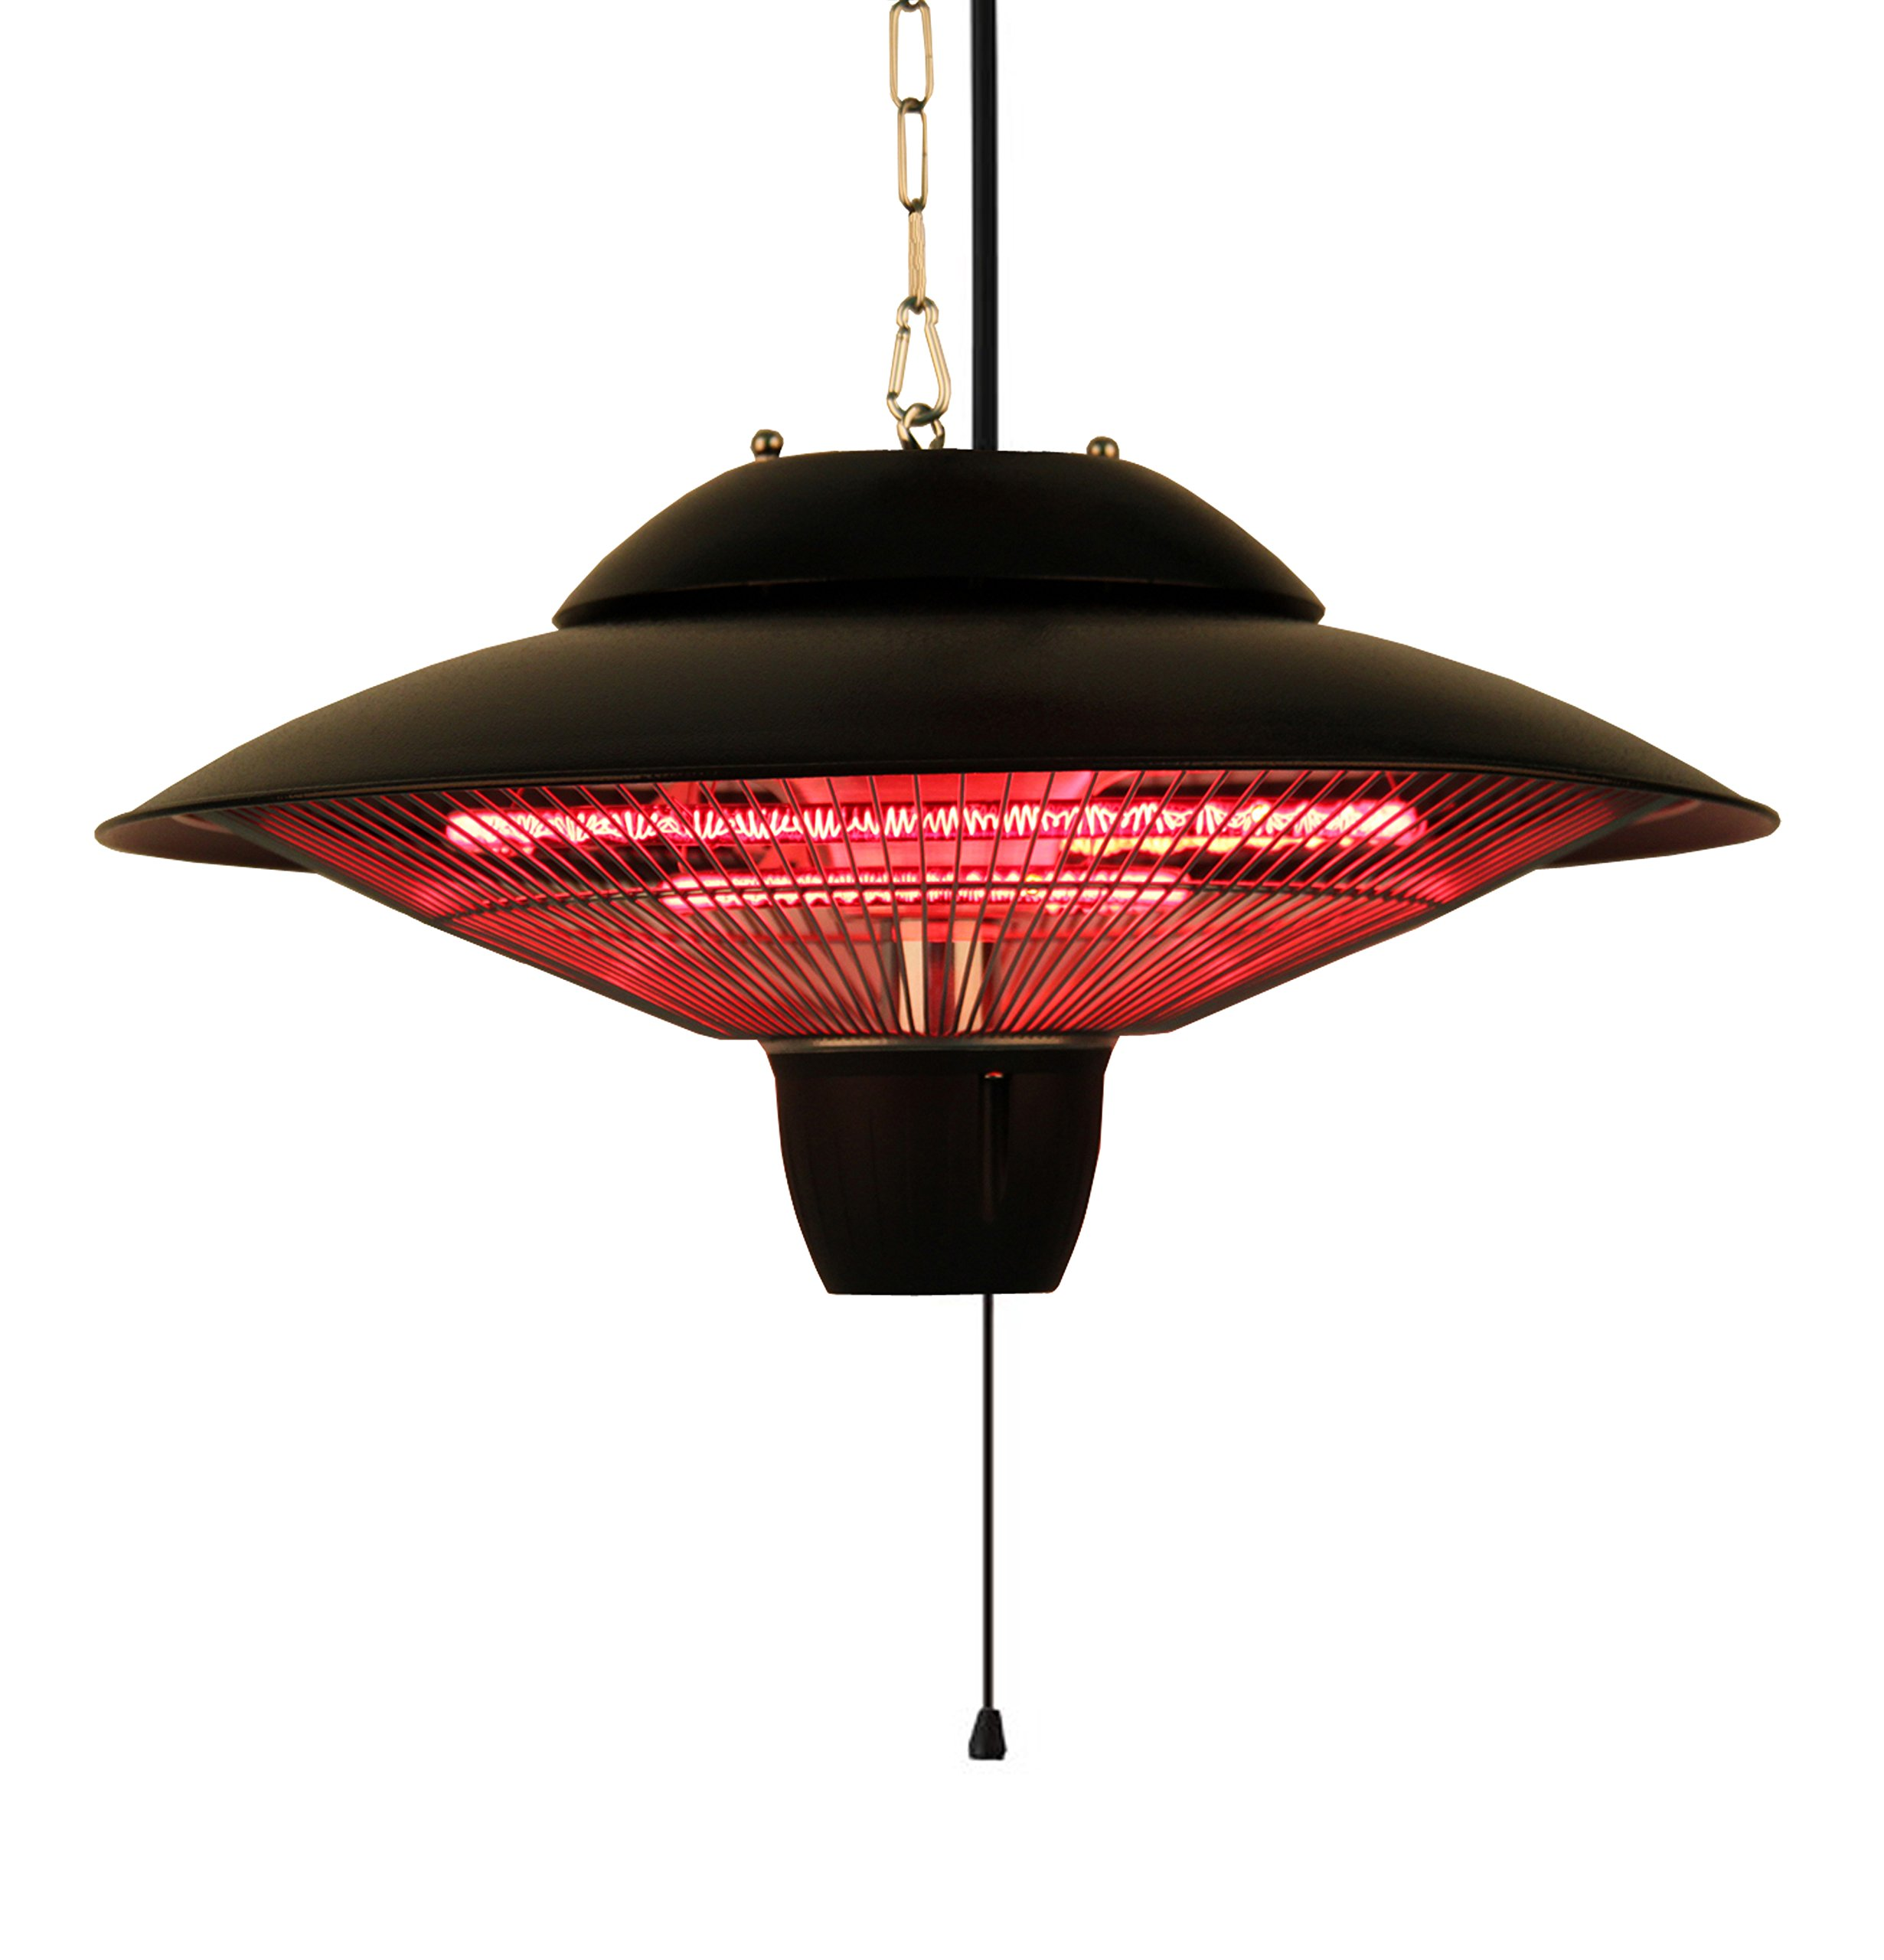 Ener-G+ Indoor/Outdoor Ceiling Electric Patio Heater, Black